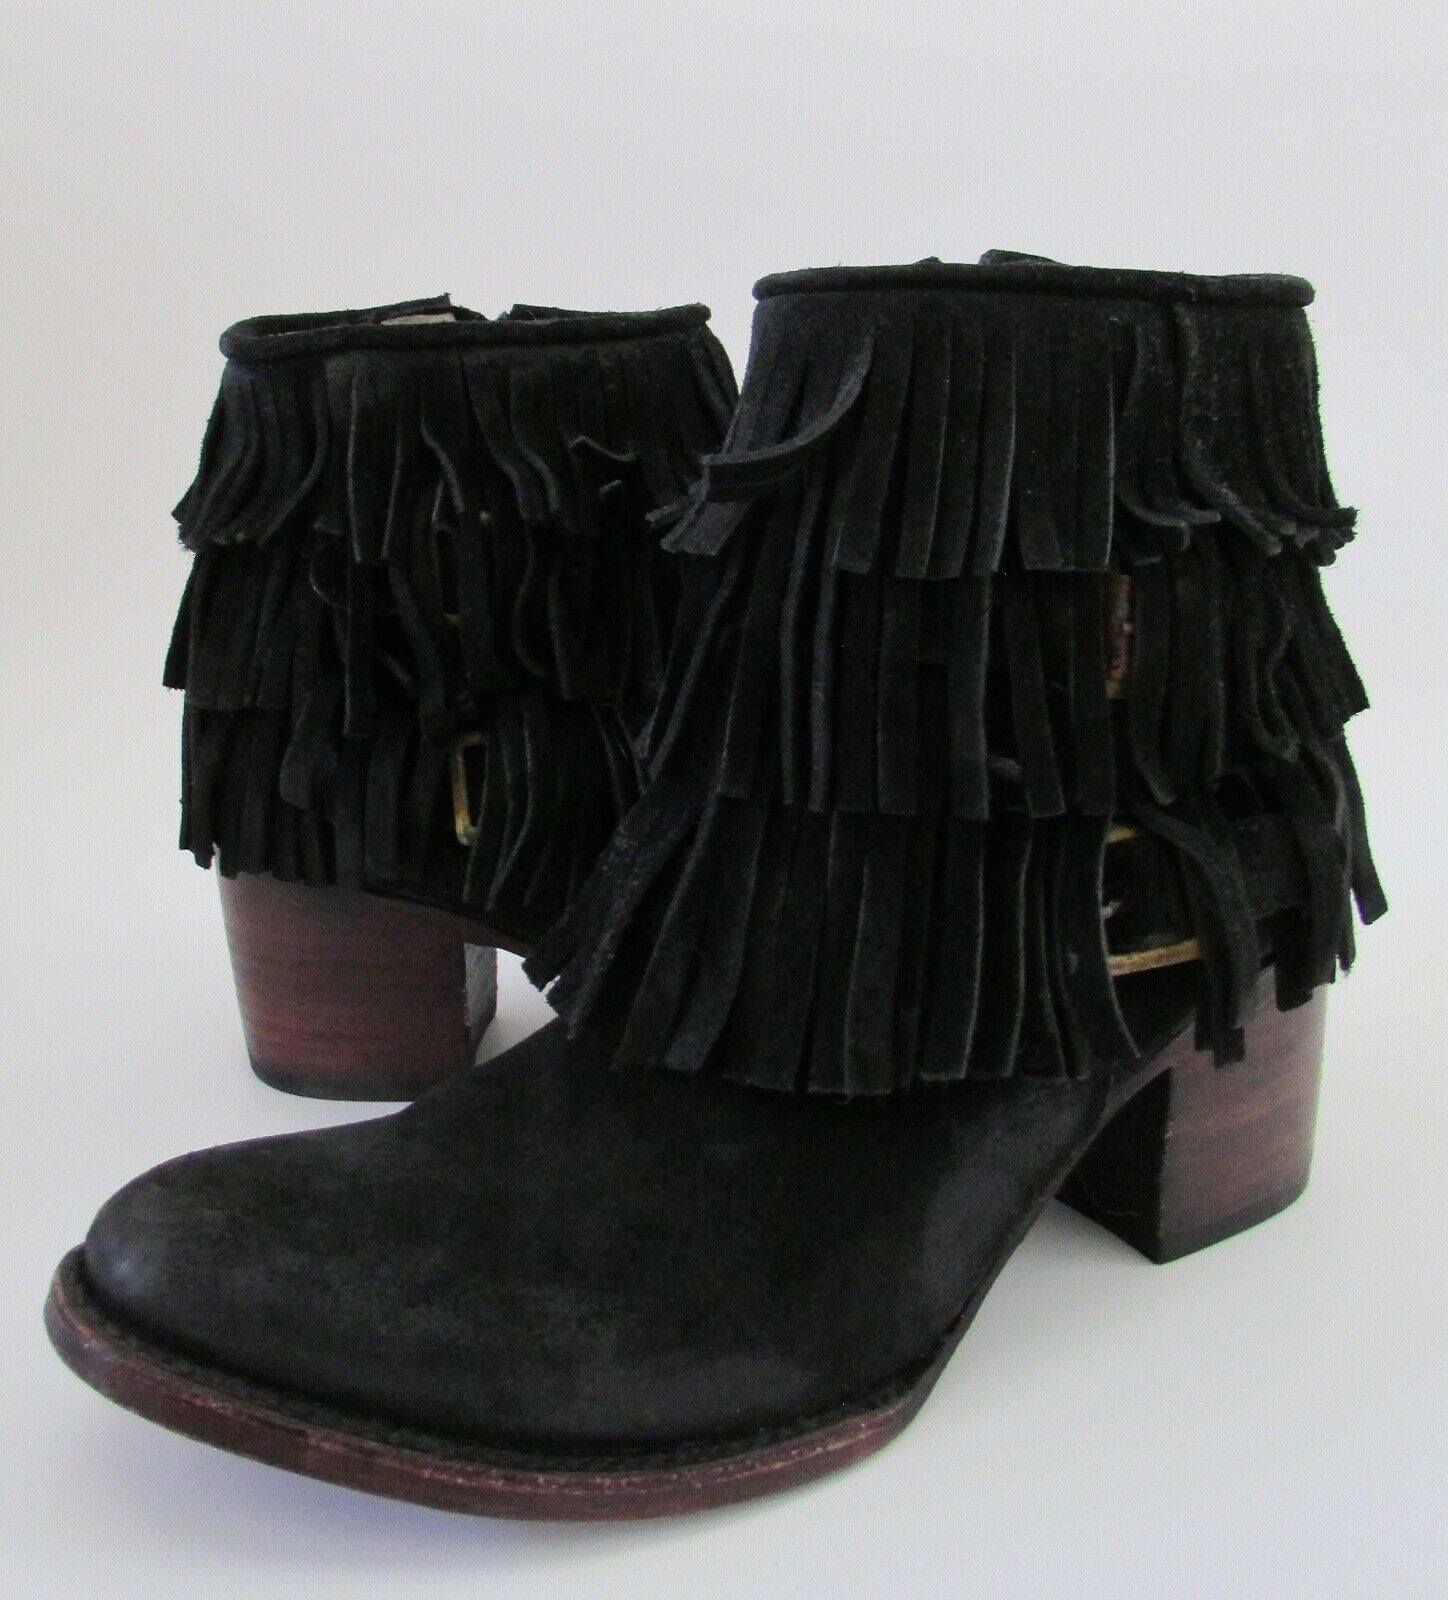 FREEBIRD by Steven Madden BELLE Black Suede Fringed Ankle Chelsea Boots 8